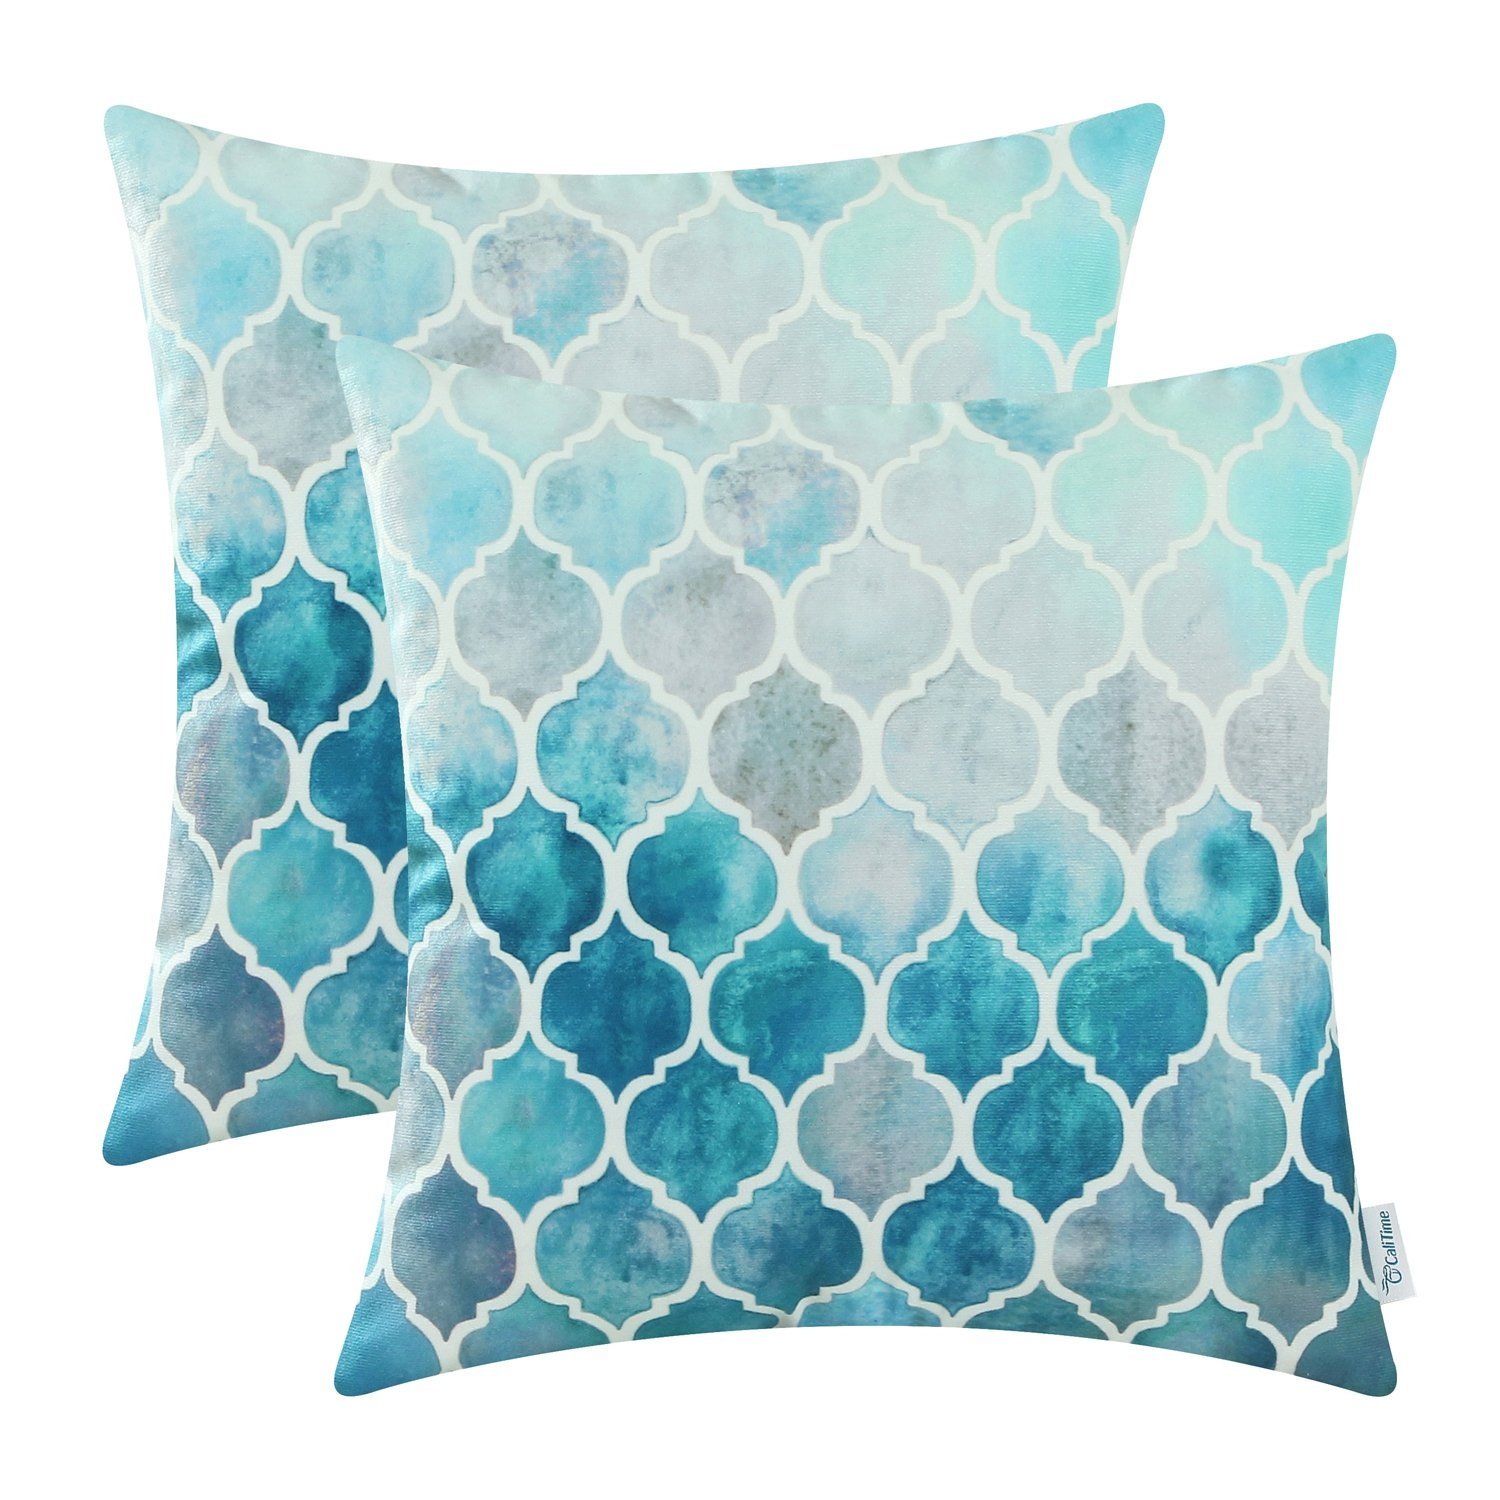 CaliTime Pack of 2 Cozy Throw Pillow Cases Covers for Couch Bed Sofa Manual Hand Painted Colorful Geometric Trellis Chain Print 18 X 18 Inches Main Grey Teal by CaliTime